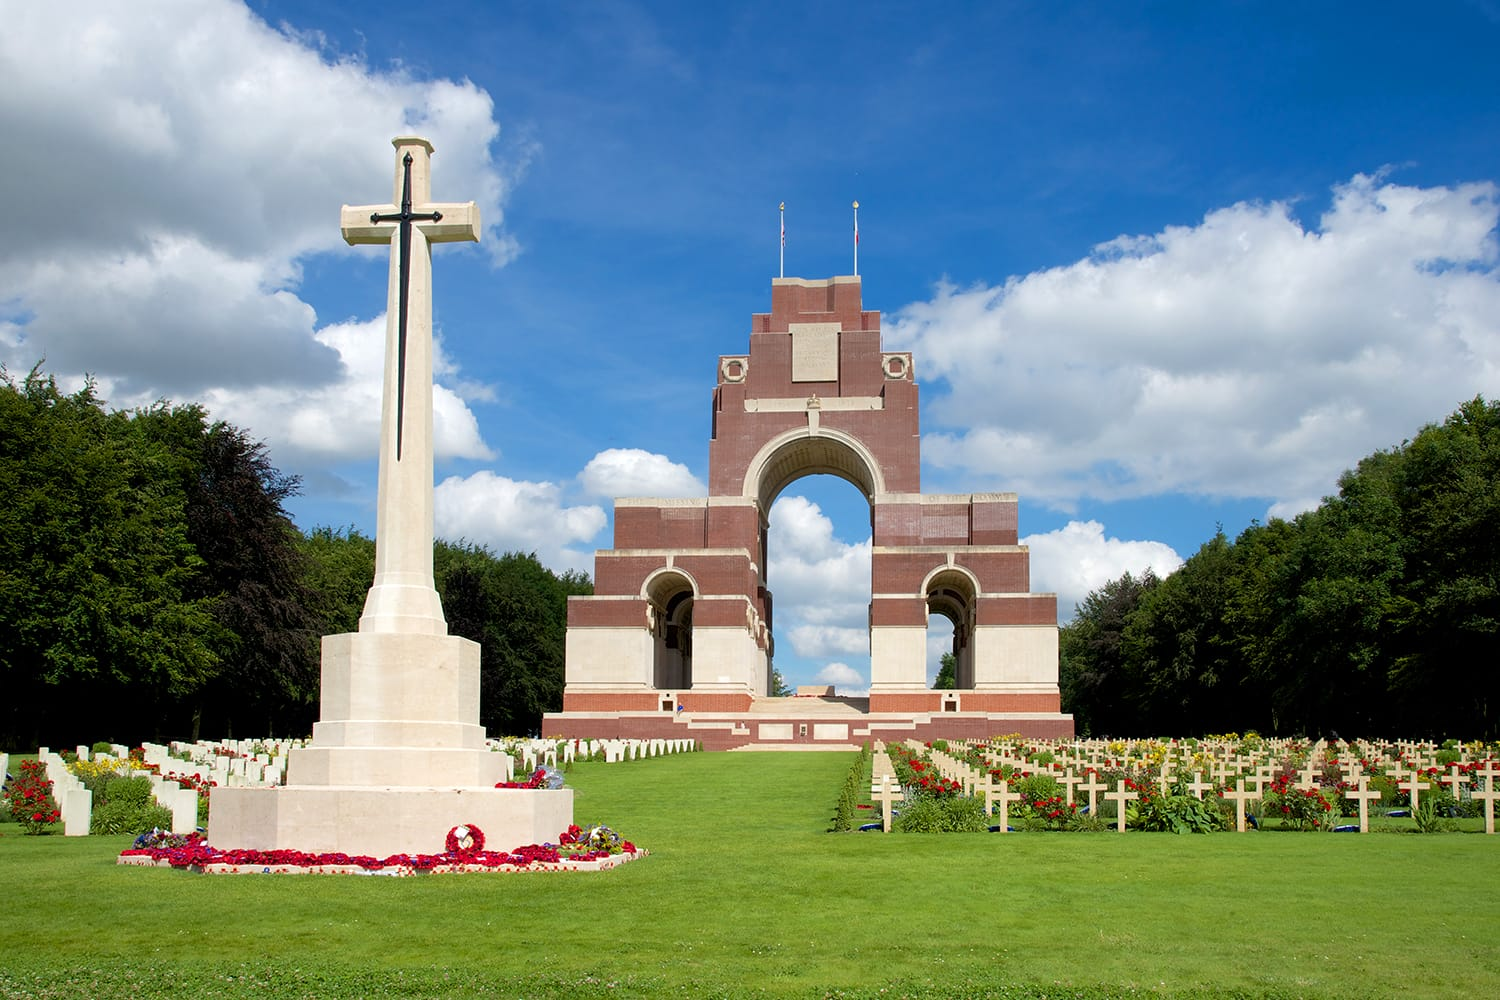 The cemetery and memorial to the missing shortly after the 100th Anniversary of the Battle of the Somme, France